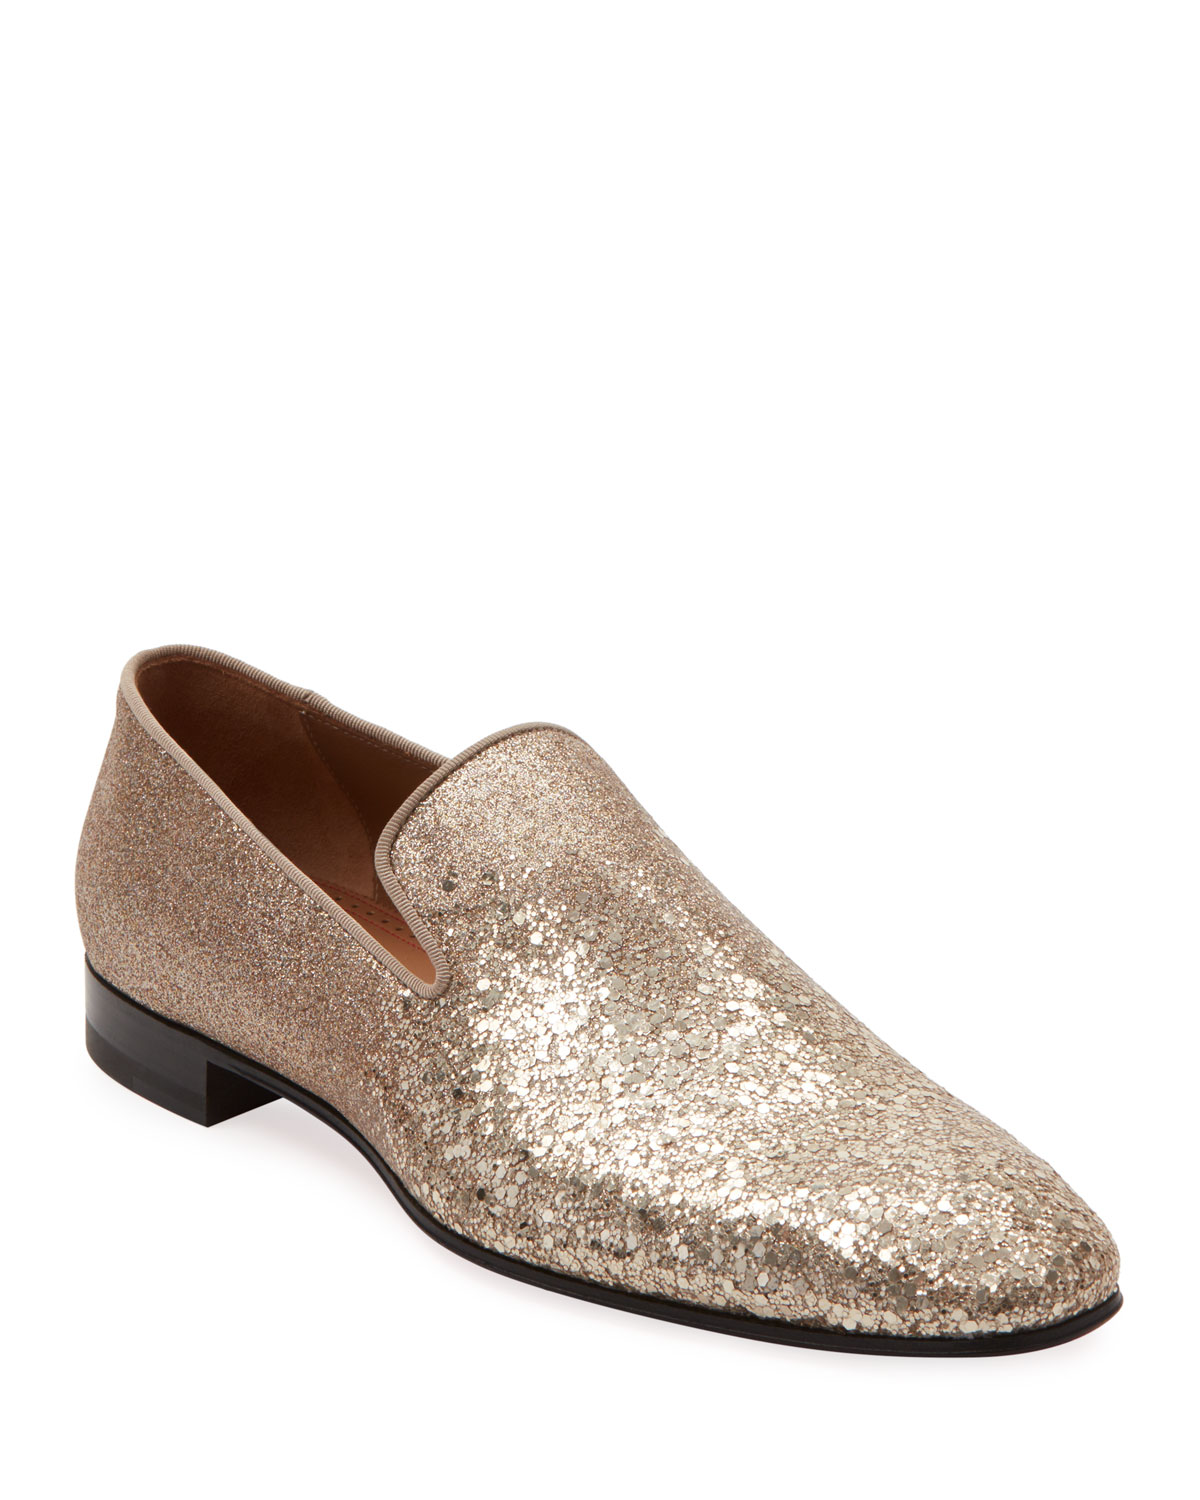 Christian Louboutin Men's Dandelion Glitter Formal Slippers